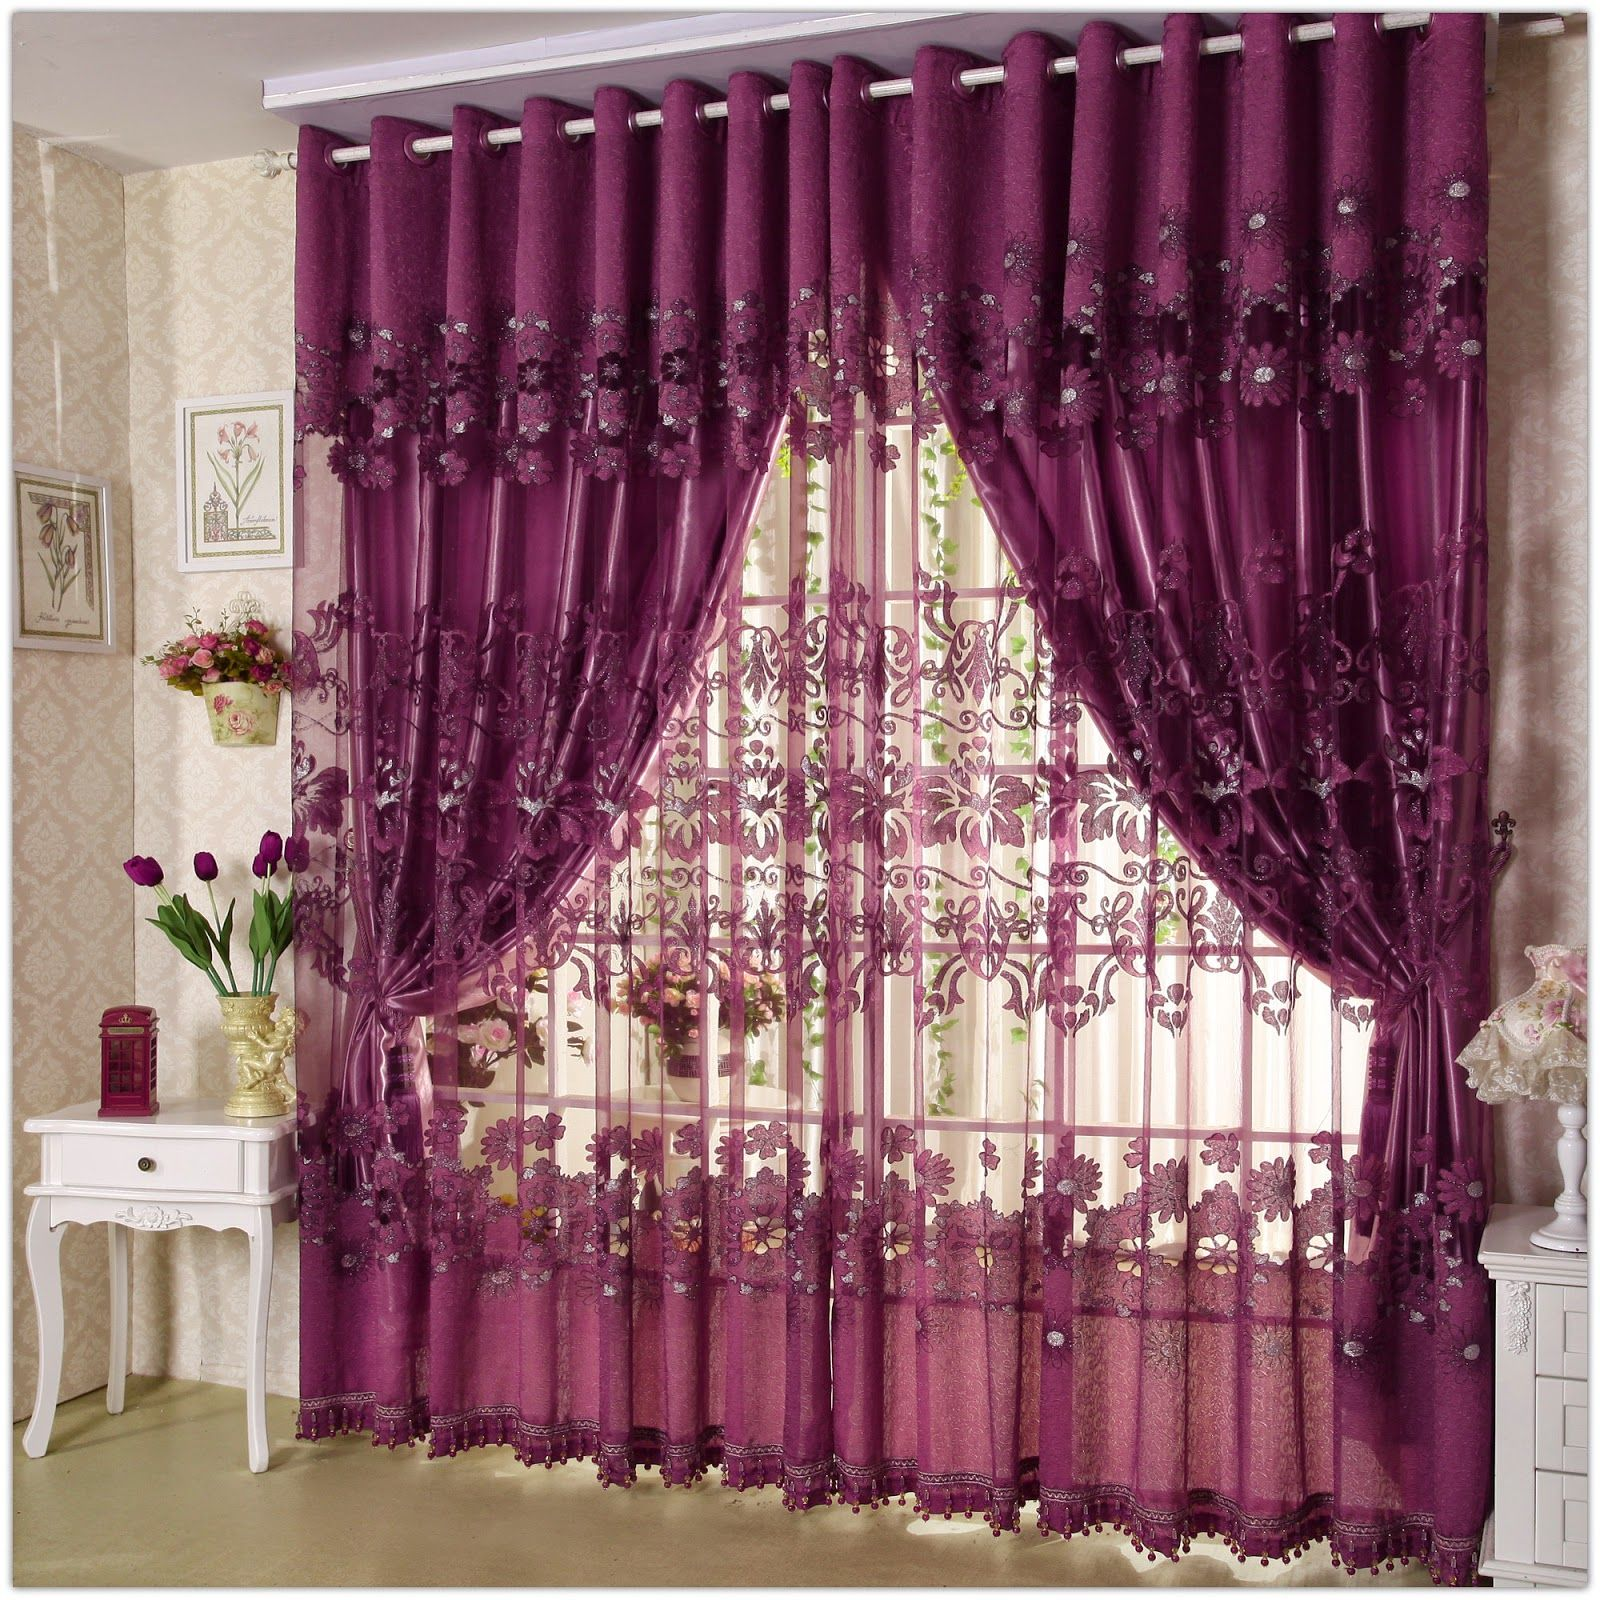 Unique curtain designs for living room window decorations | Unique ...